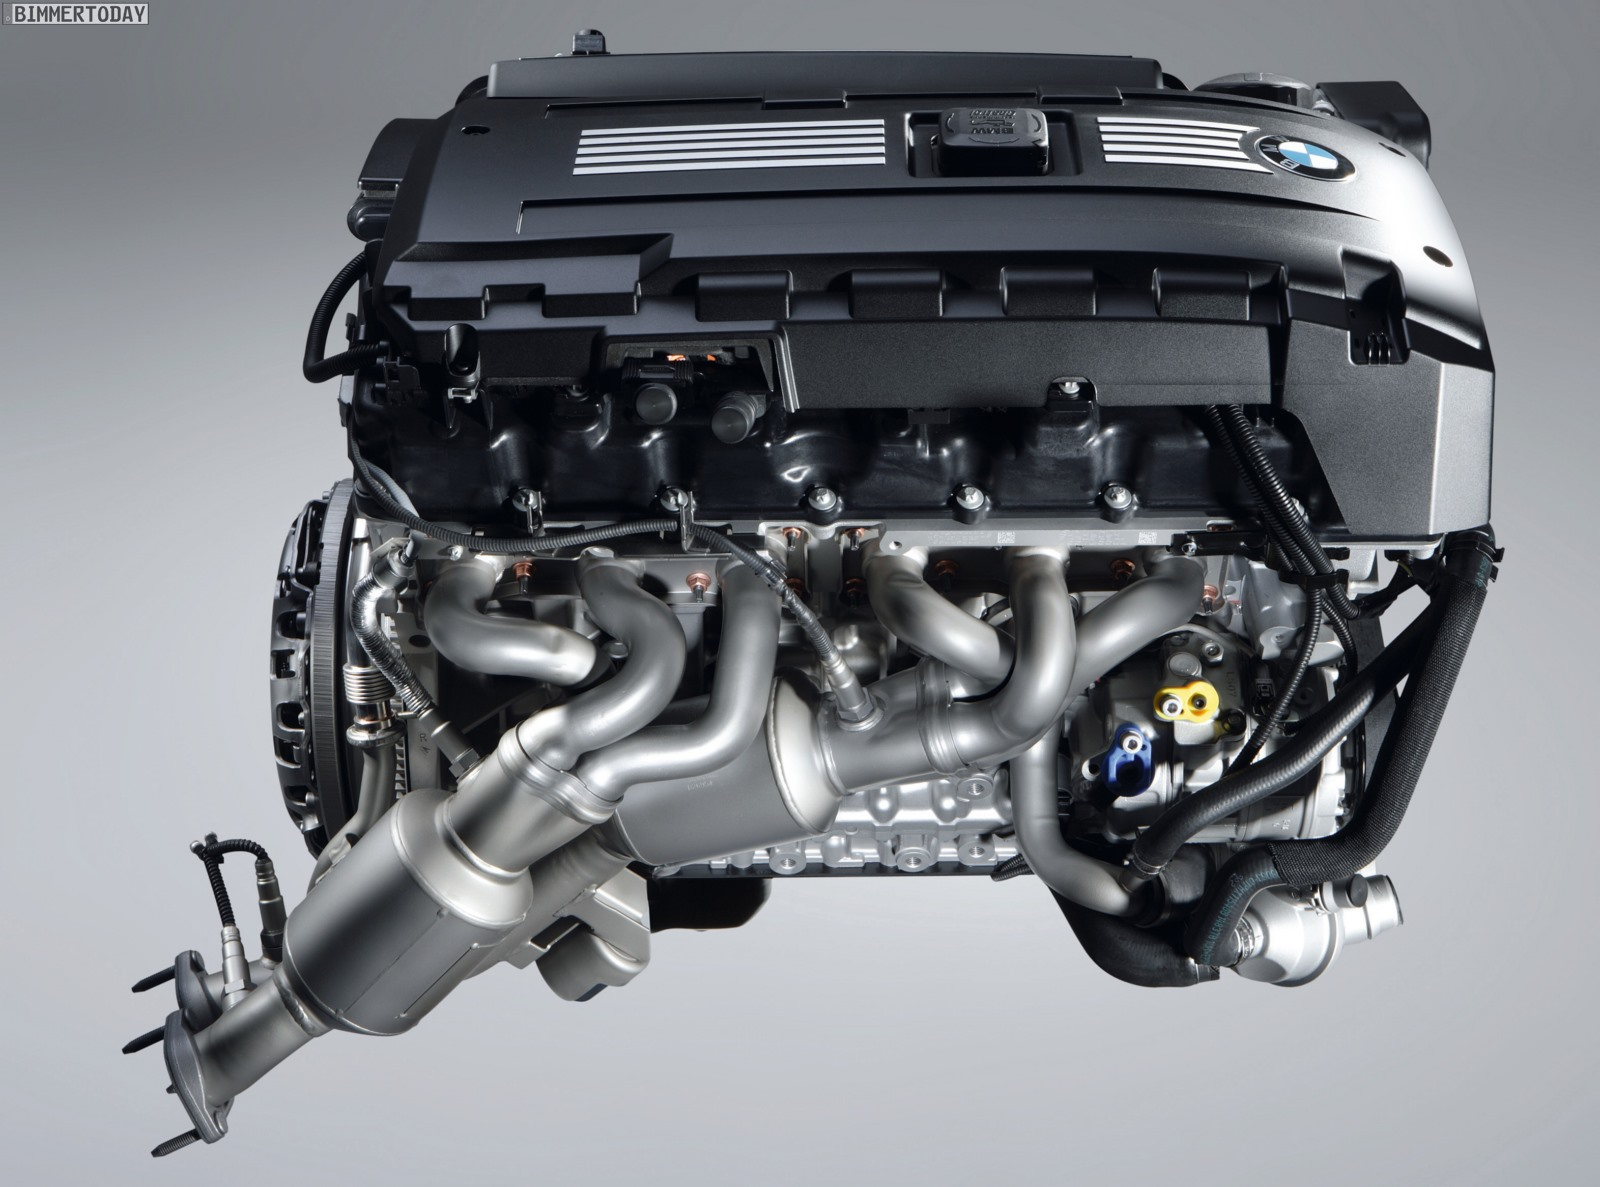 bmw e60 ccc wiring diagram how many four sided figures are in this e61 engine e32 elsavadorla